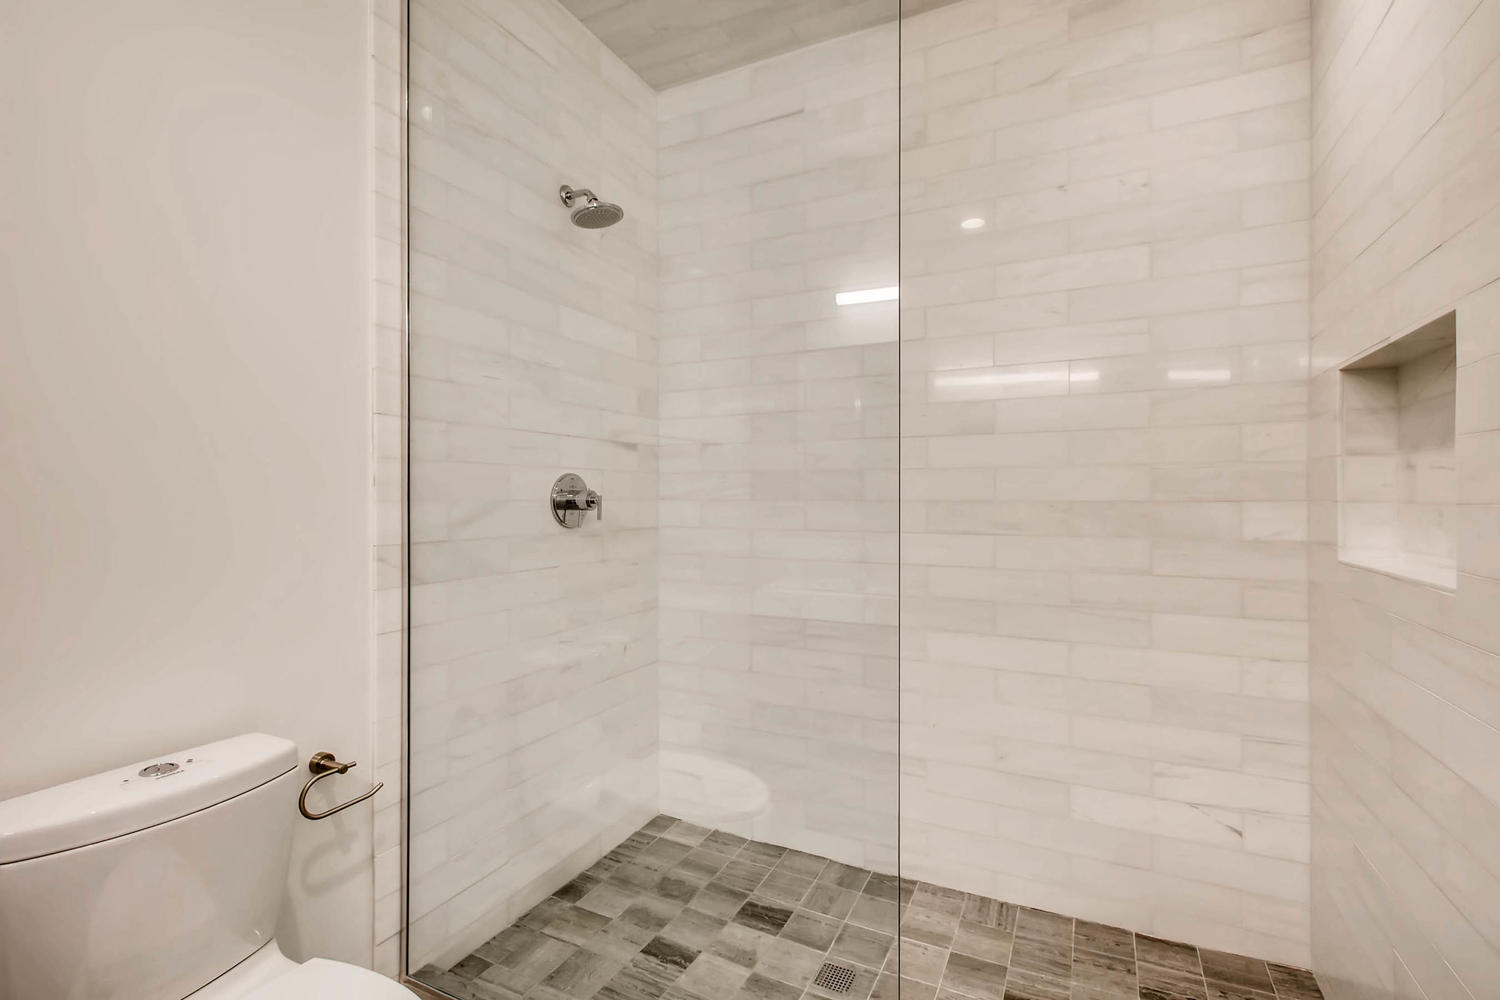 3508 N Reta Ave Chicago IL-large-025-15-Master Bathroom-1500x1000-72dpi.jpg